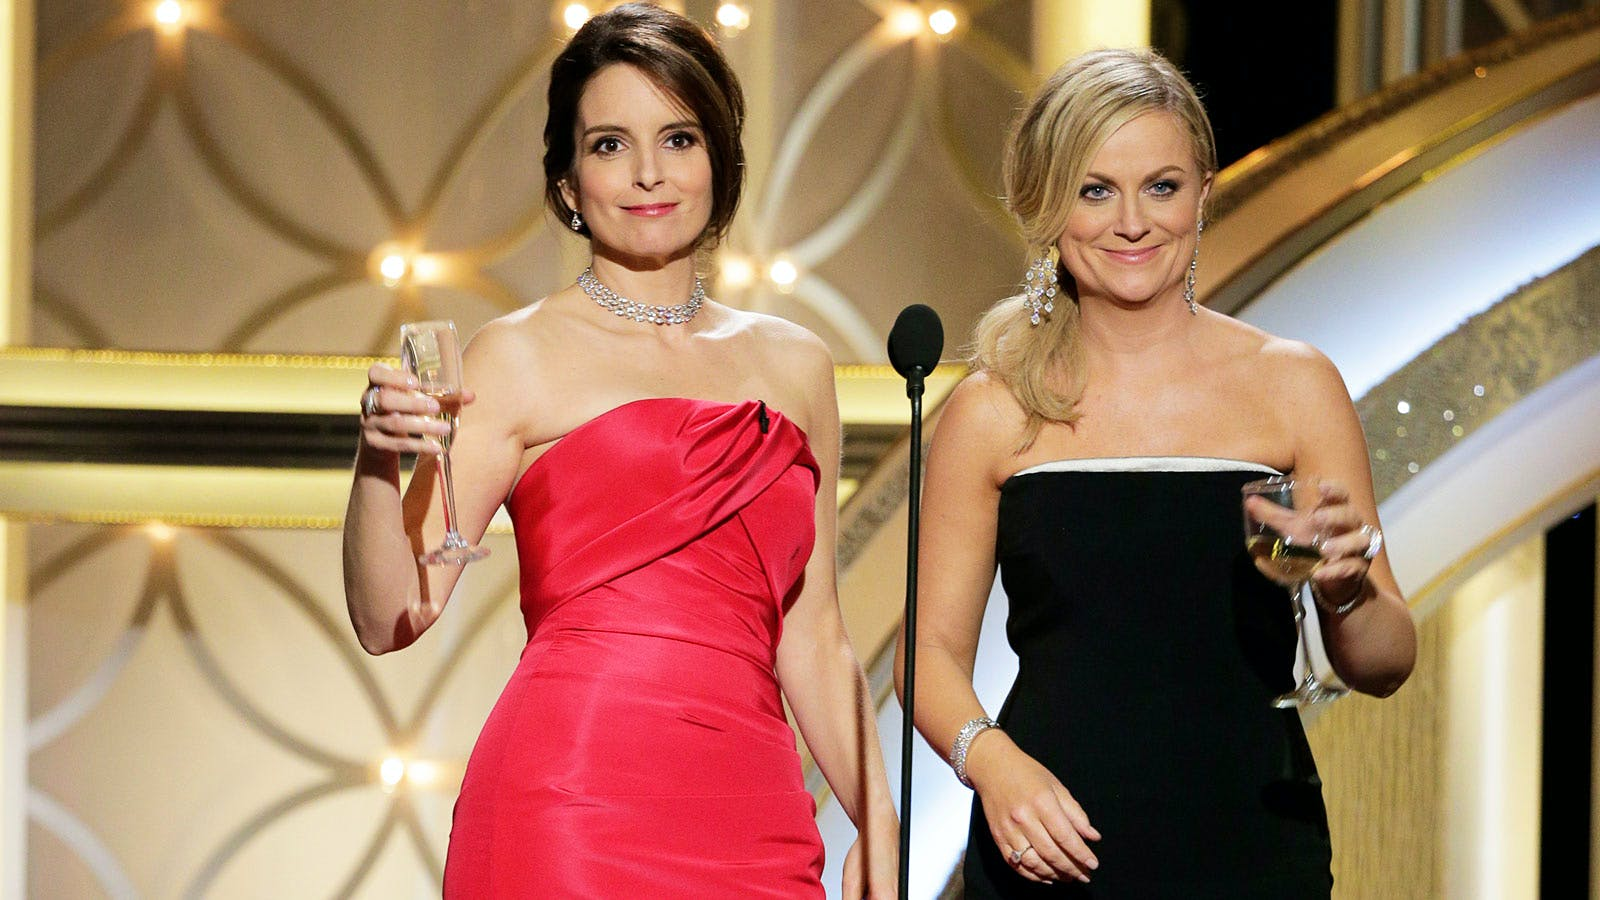 Amy Poehler, Tina Fey, Maya Rudolph Making 'Wine Country' Movie; Filming Starts Today